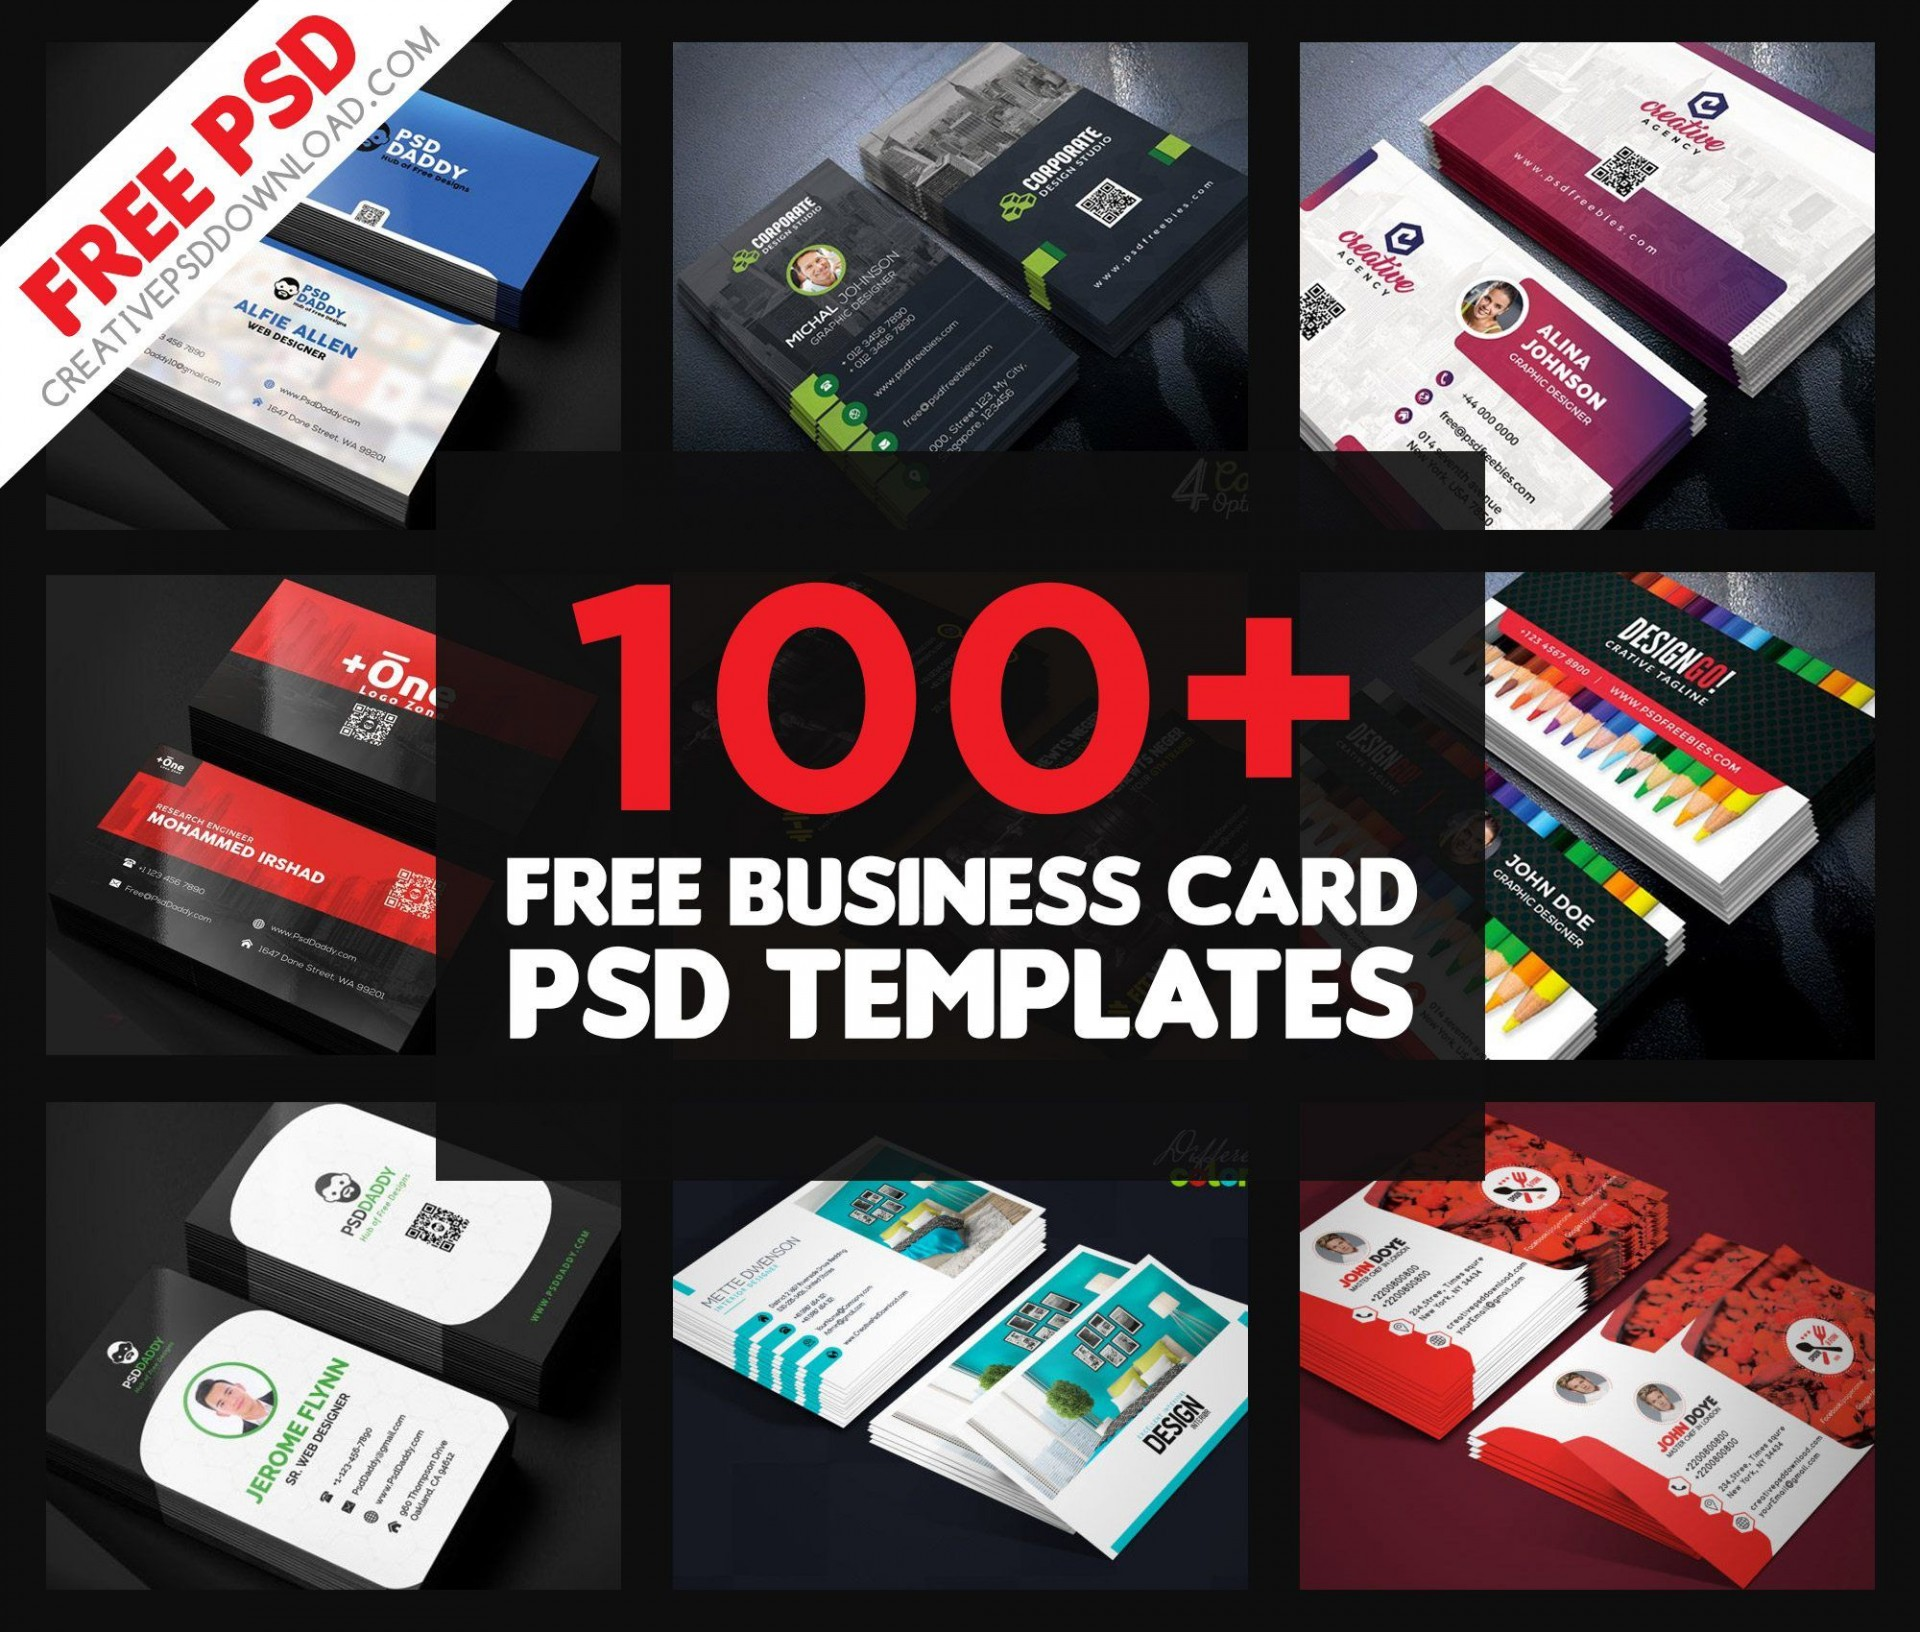 005 Amazing Free Adobe Photoshop Busines Card Template Highest Clarity  Templates Download1920